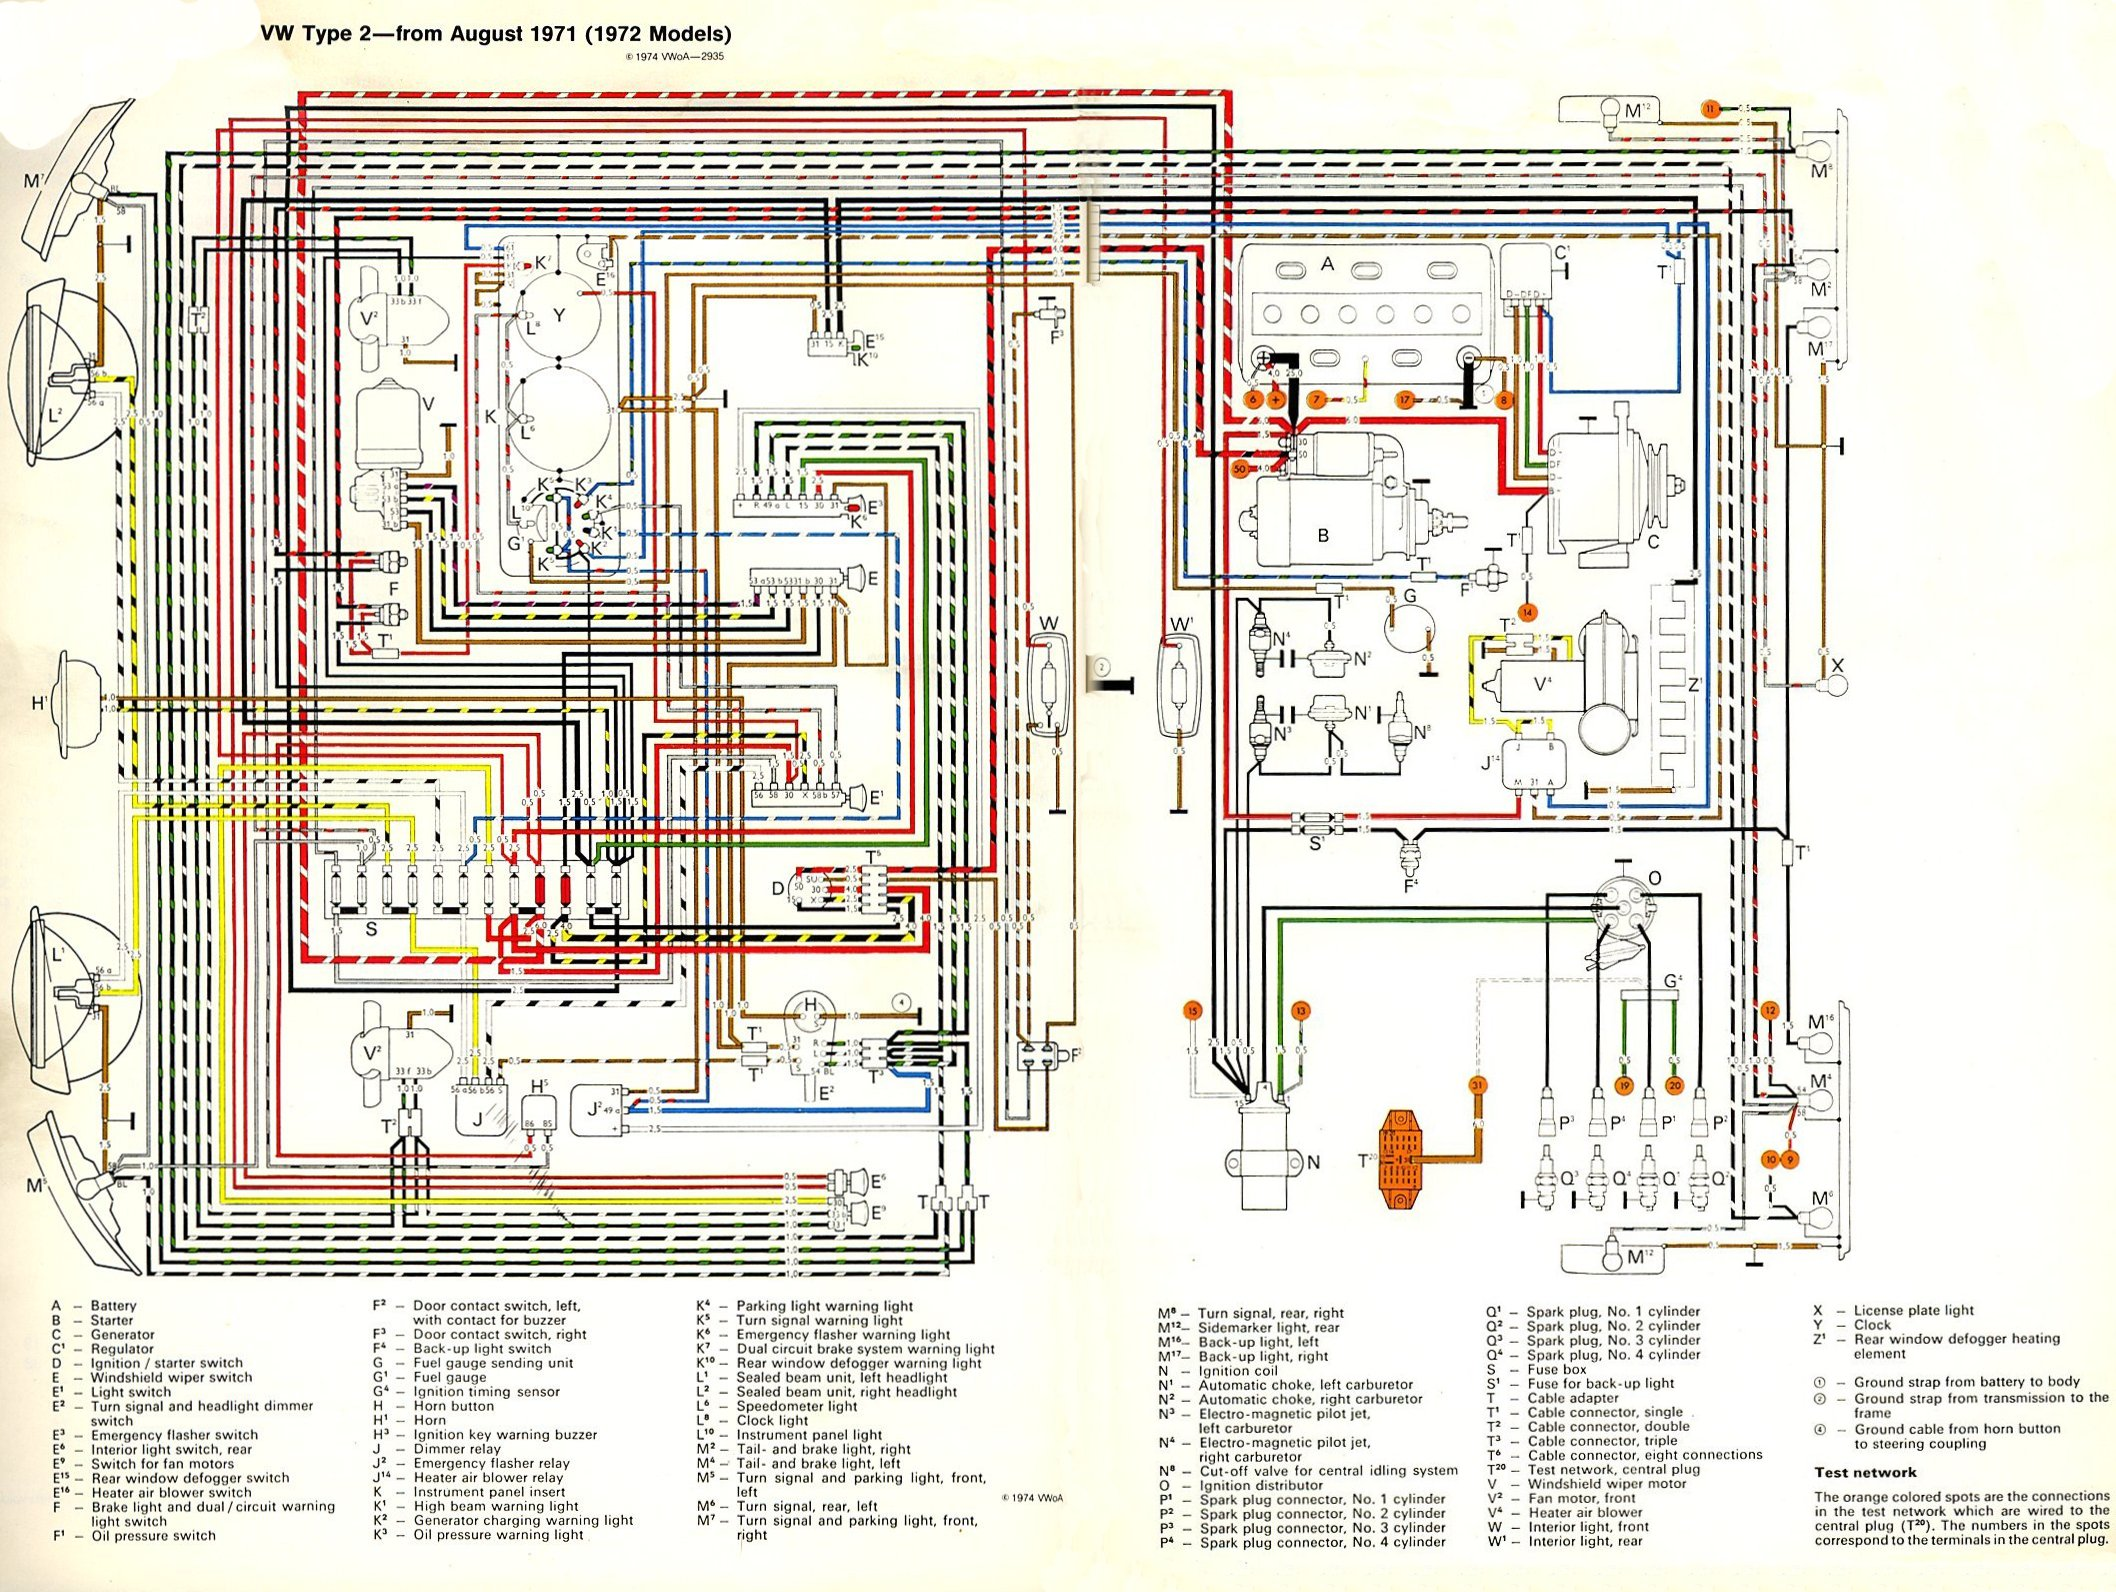 bus_1972_wiring bus_1972_wiring jpg (2116�1592) wire pinterest kombi camper vw t4 fuse box wiring diagram at virtualis.co